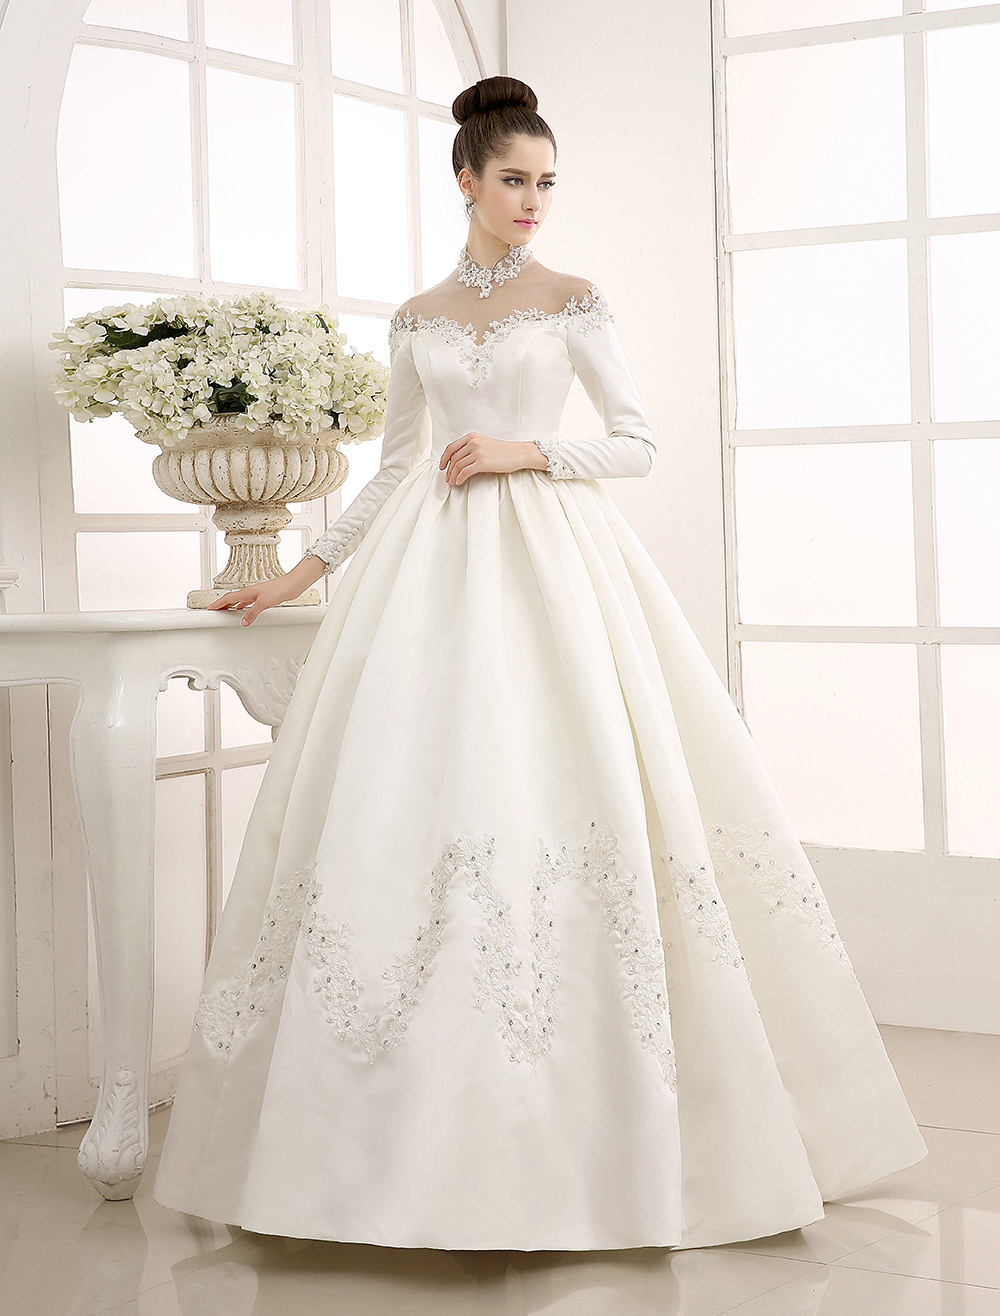 Ivory Wedding Dress/Ball Gown with High Collar Applique Milanoo